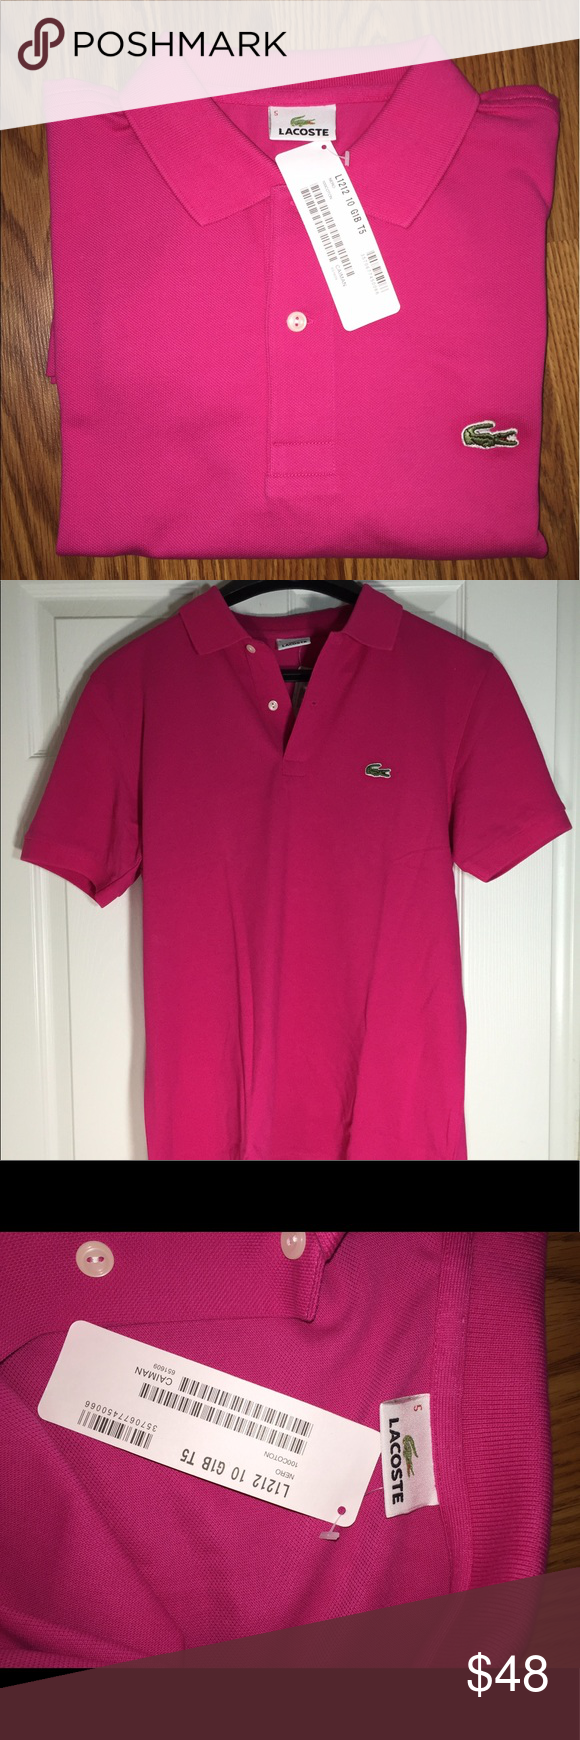 ed3c9aae Lacoste Men's Pink Polo Shirt - Sz 5 / Large Lacoste Men's Pink Polo Short  Sleeve Shirt - Size 5 NWT Authentic Lacoste Shirt Purchased In The  Philippines So ...